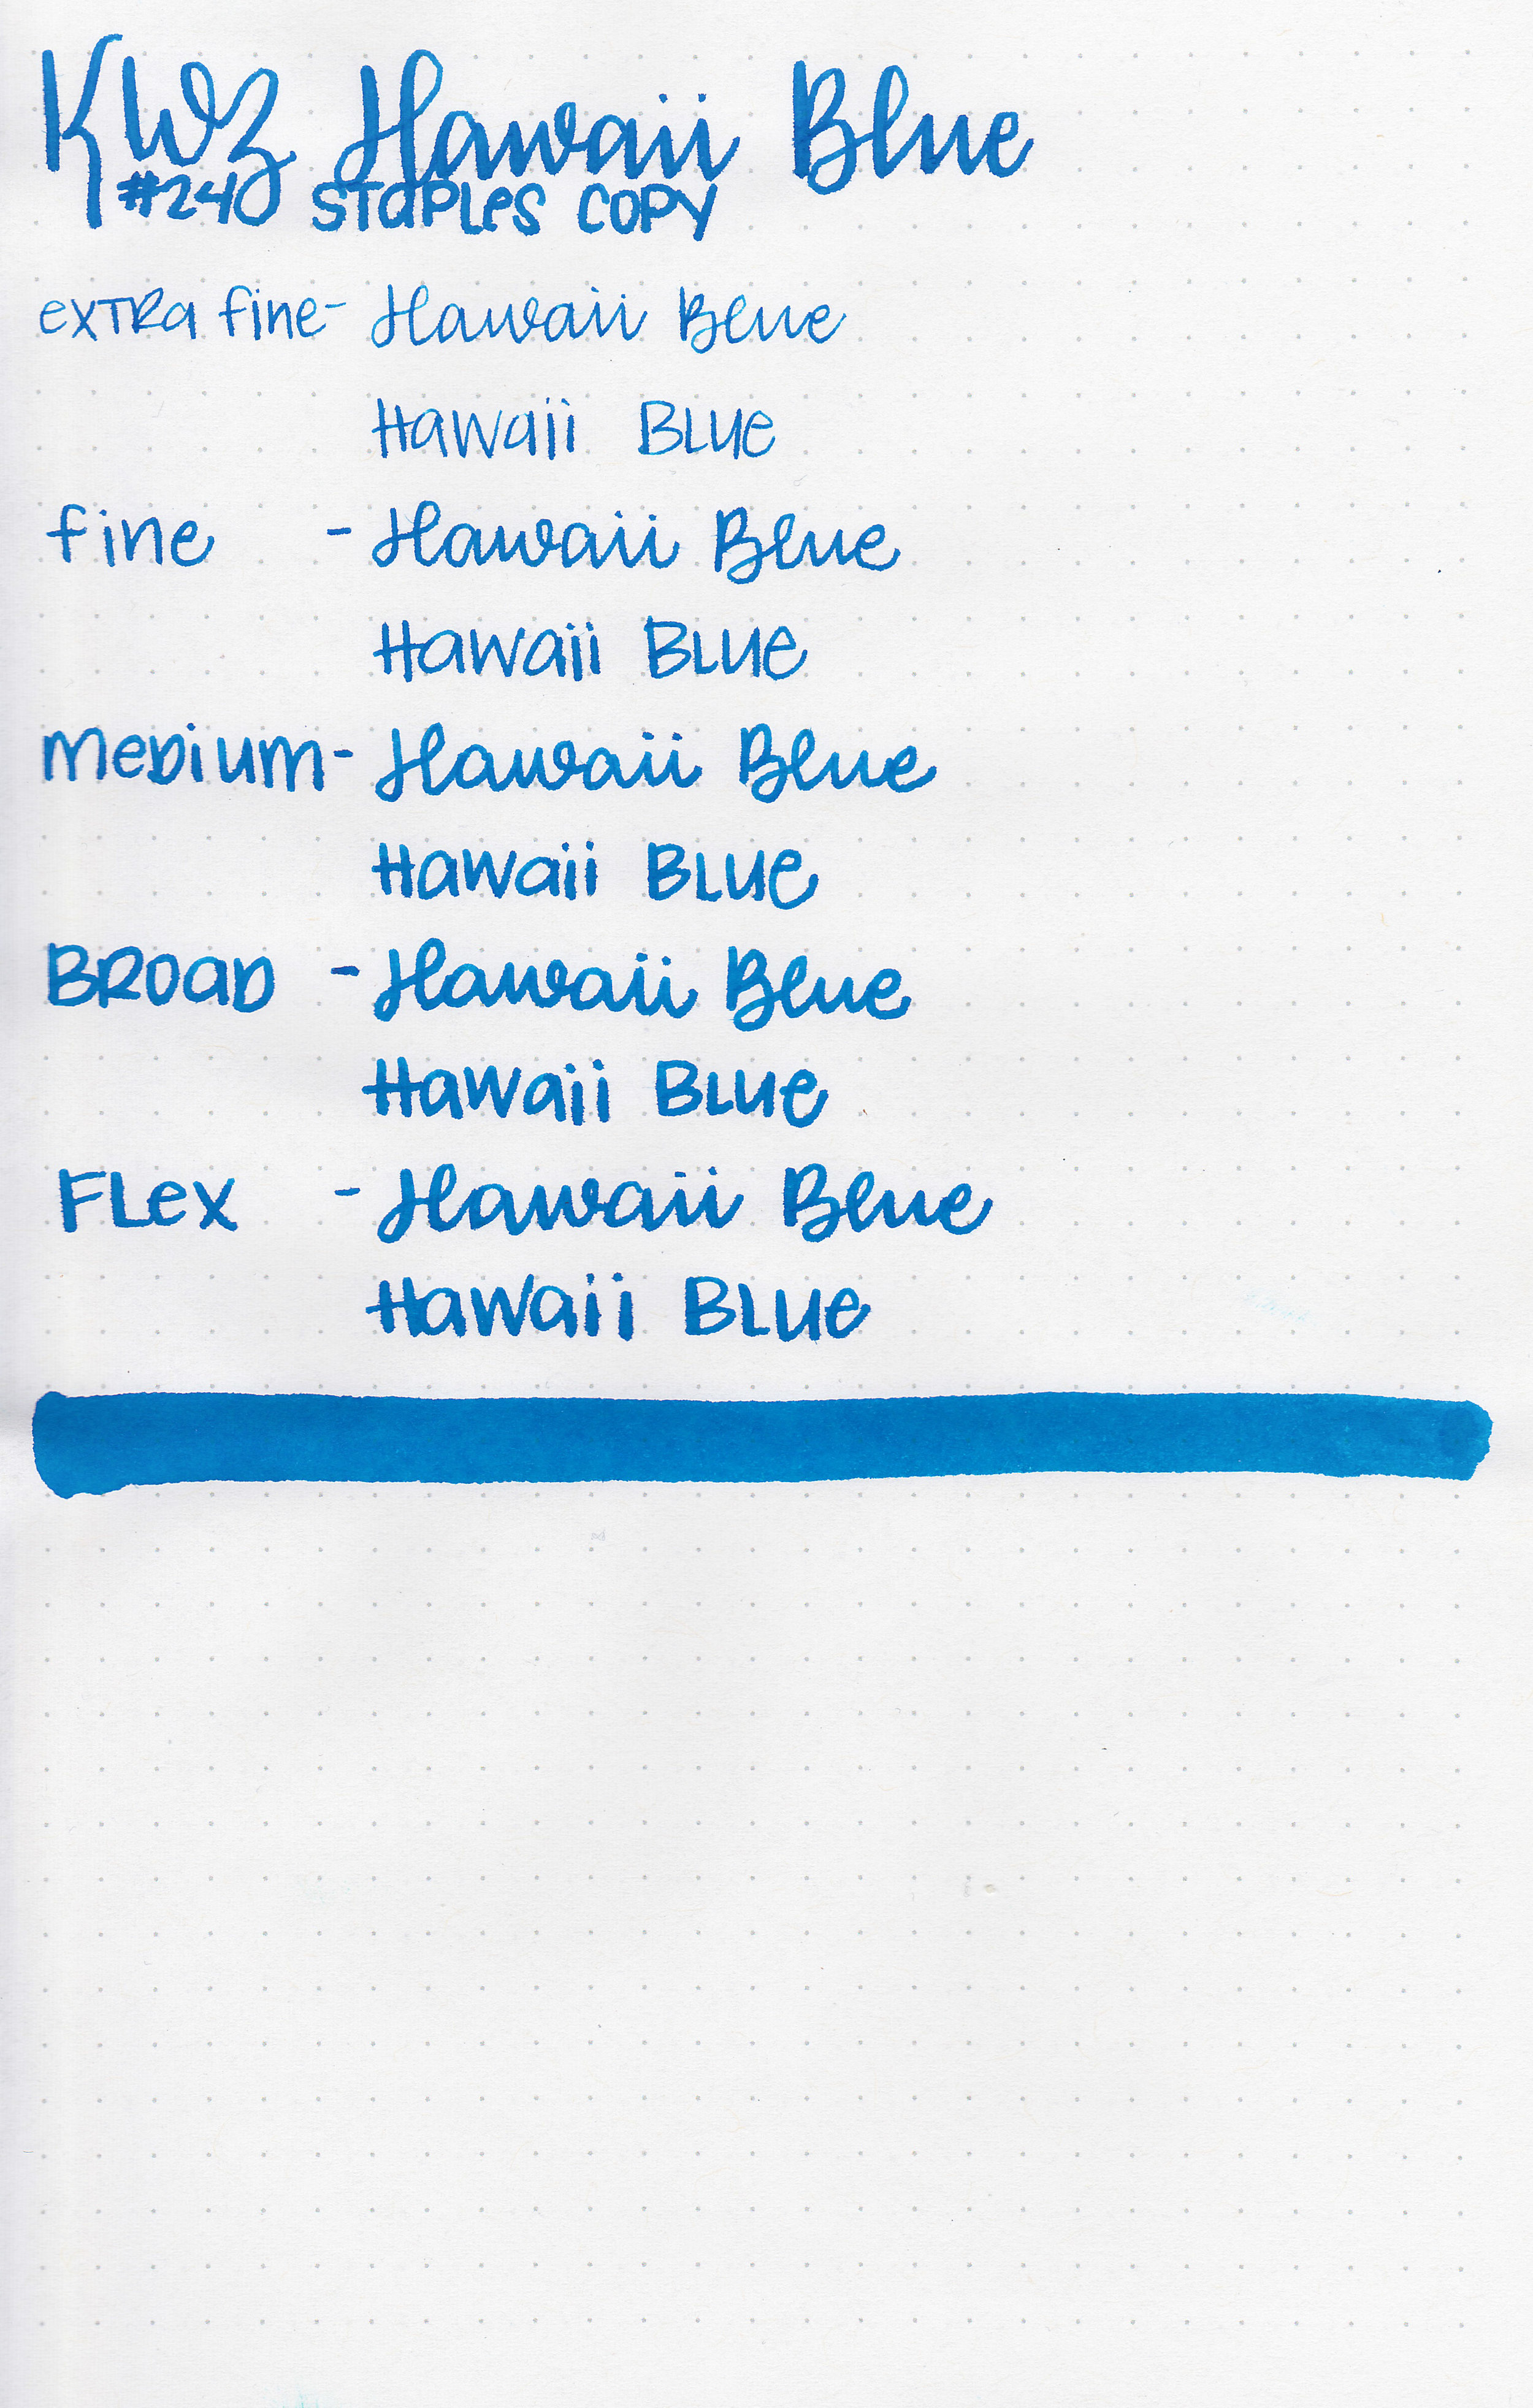 kwz-hawaii-blue-9.jpg